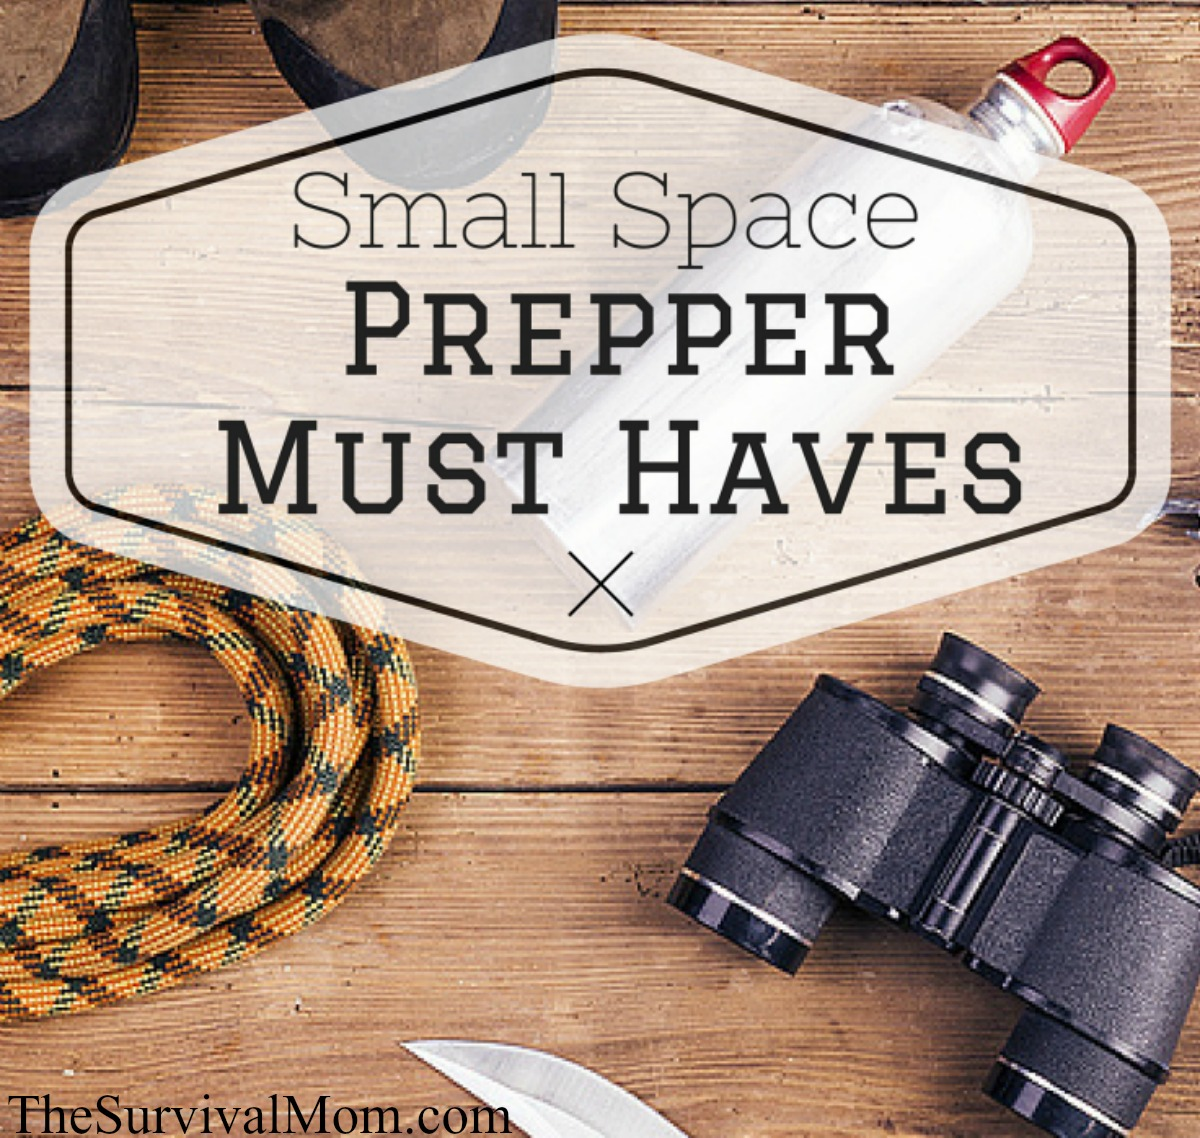 Small Space prepper